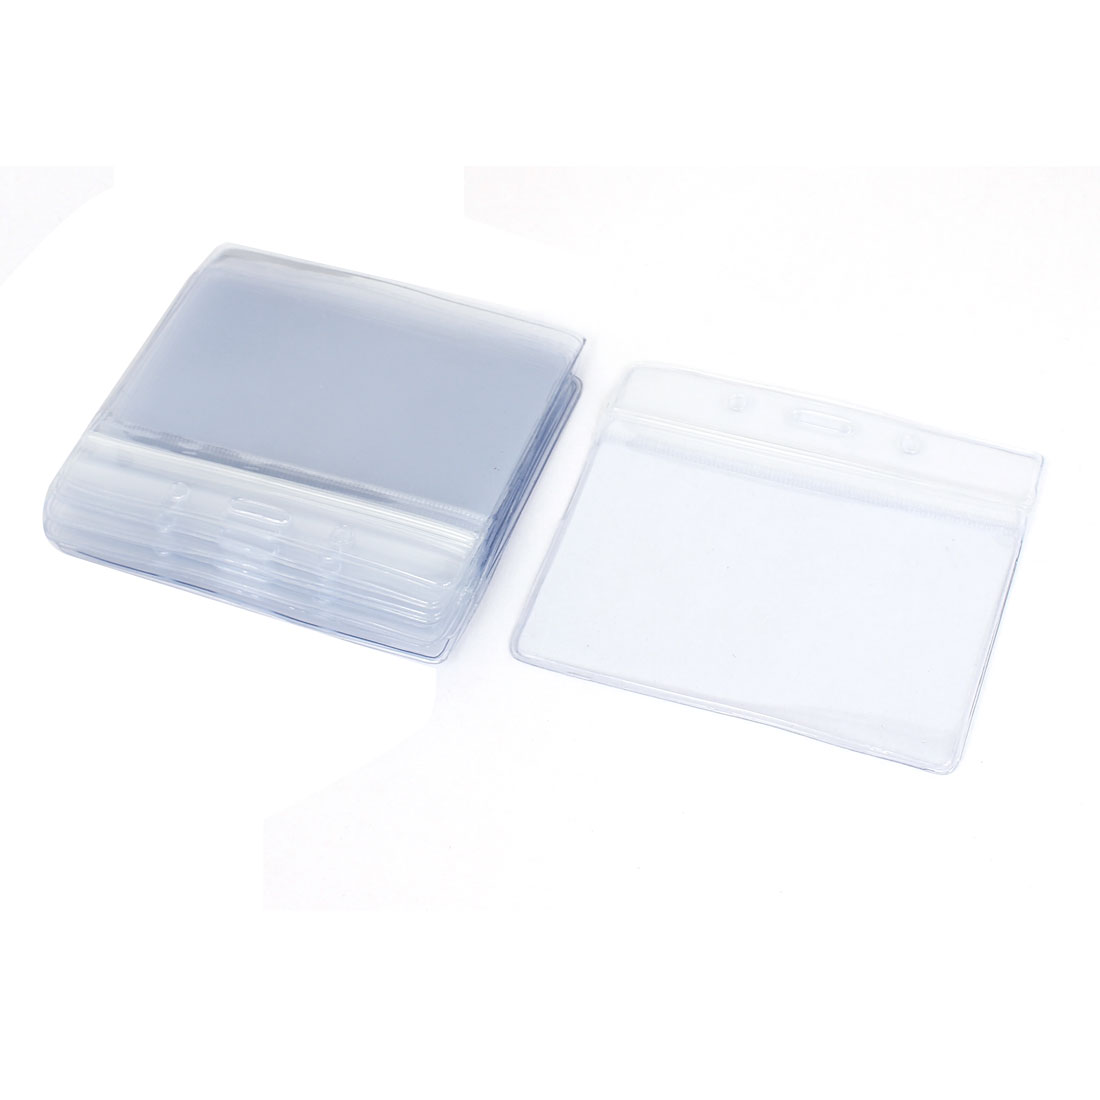 Plastic Company Work Exhibition Name Tag Position Badge ID Card Holder 10pcs